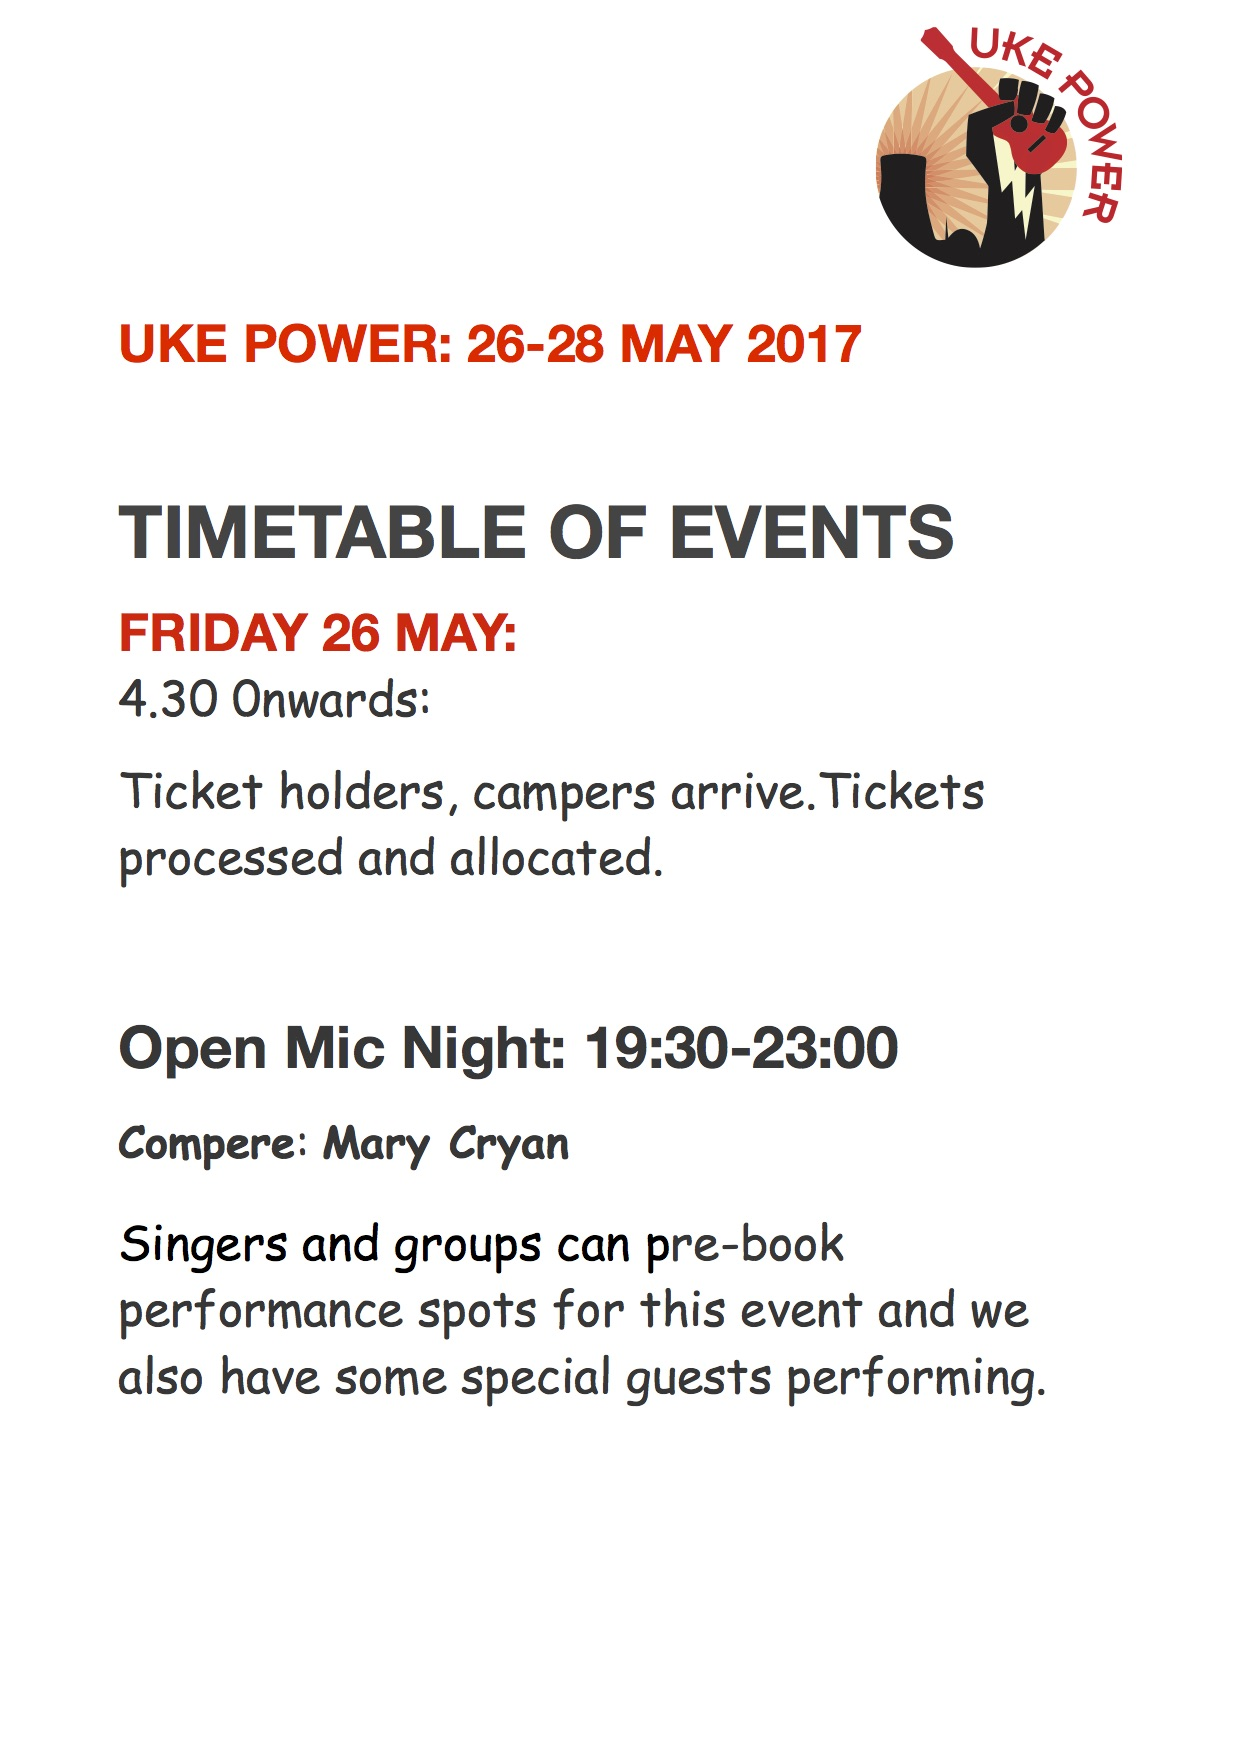 Uke Power 2017 Timetable of Events